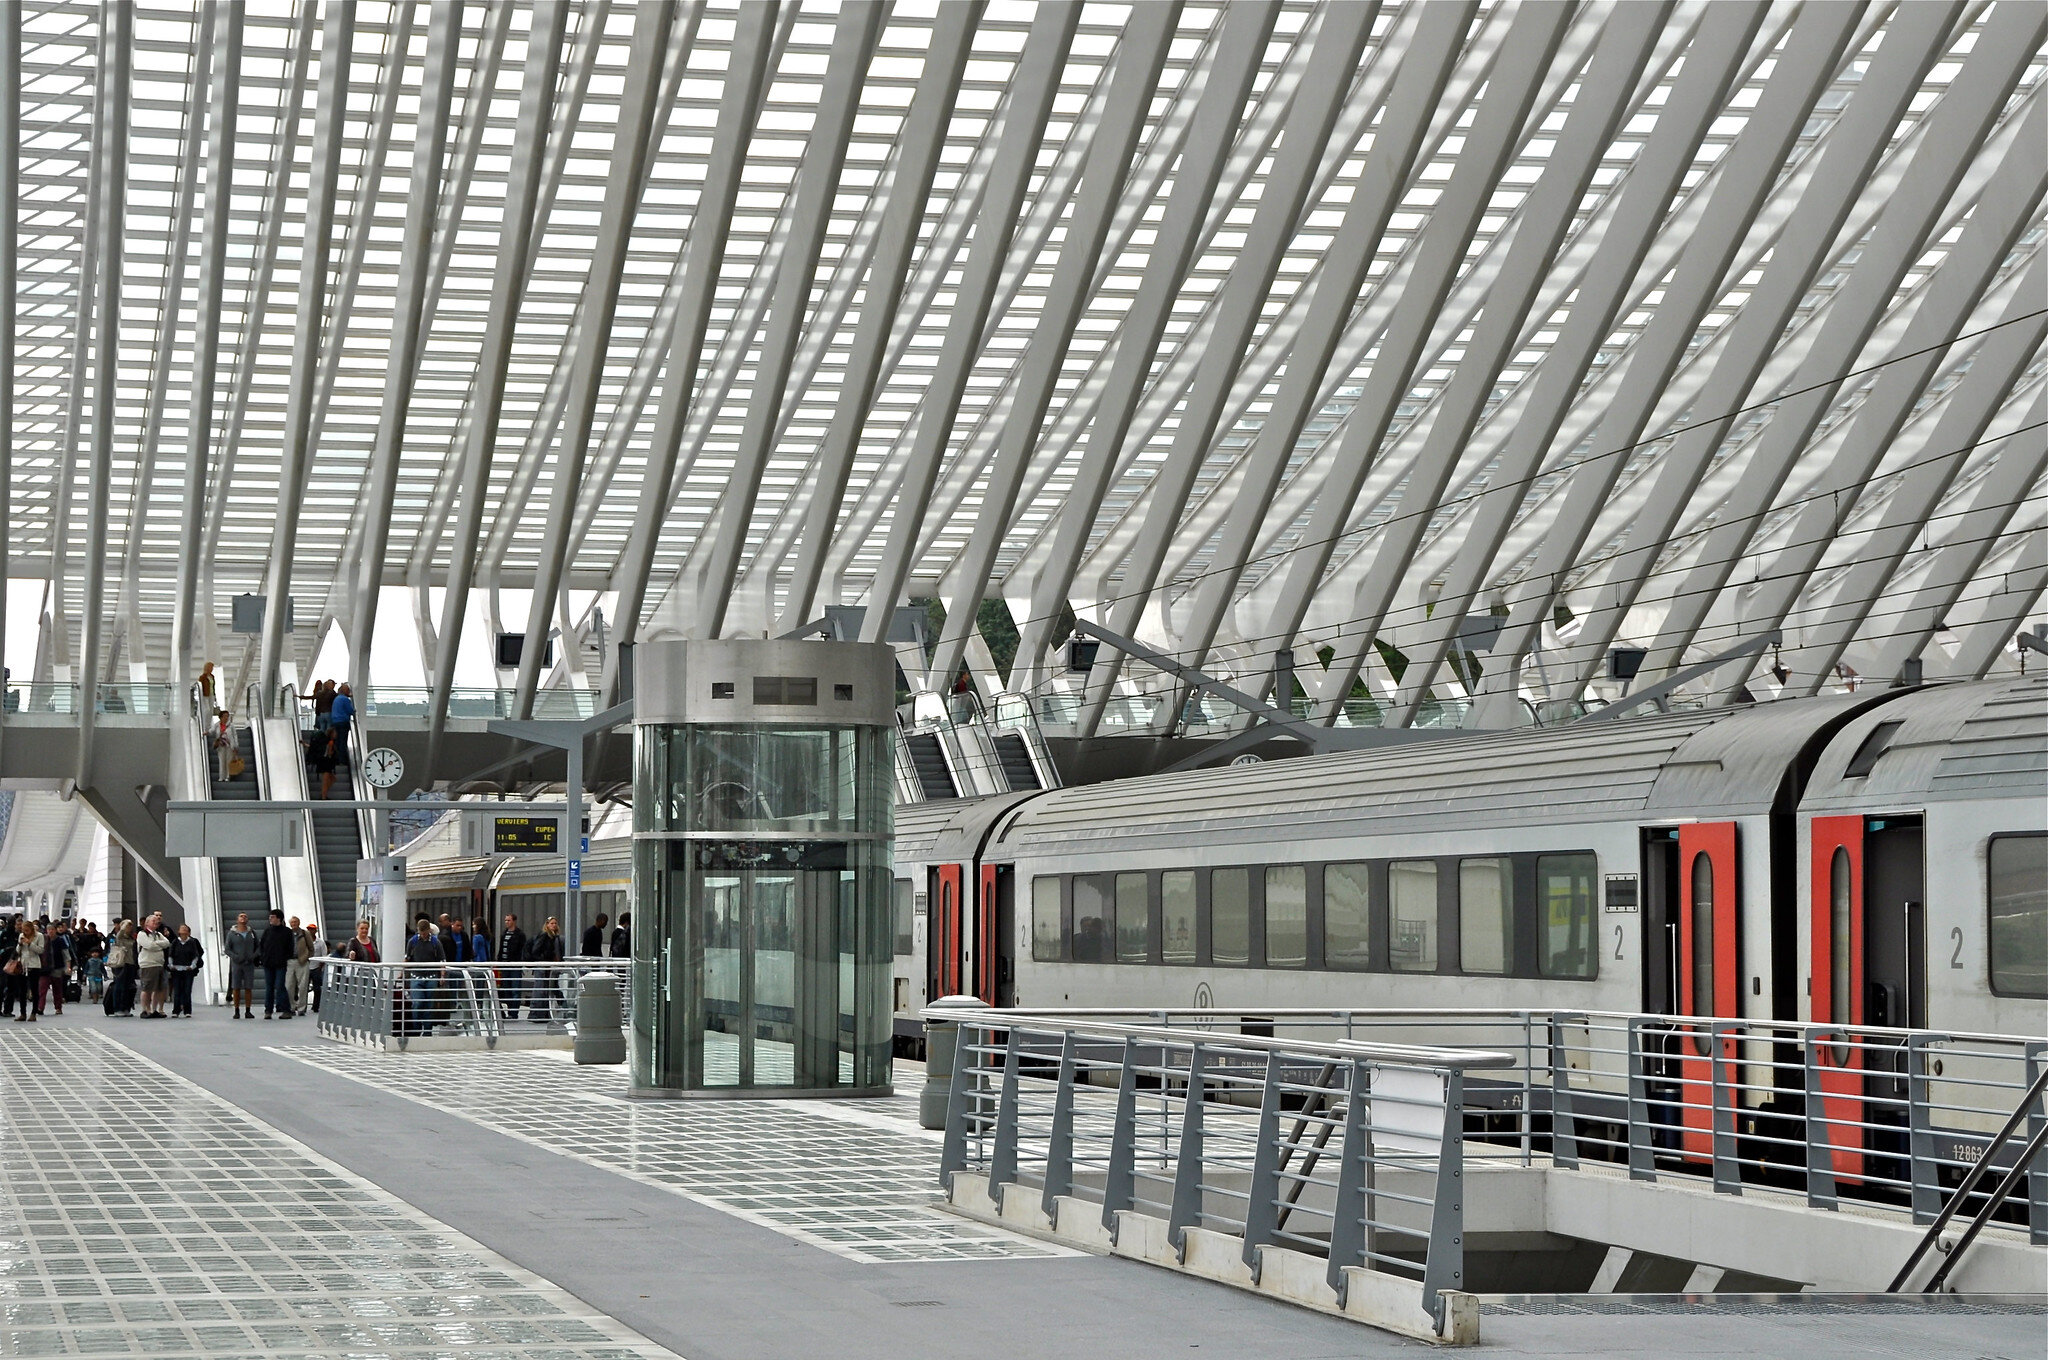 CONFERENCE AND GUIDED TOUR OF THE NEW MONS TRAIN STATION IN CONSTRUCTION - THE DESIGN AND PRACTICAL ASPECTS OF THE BUILDING BY SANTIAGO CALATRAVA WILL BE DISCUSSED AS WELL AS THE CONSTRUCTION CHALLENGES FOR A BUILDING THAT IS BEING BUILT OVER A CONTINUOUSLY ACTIVE RAILWAYPhoto: